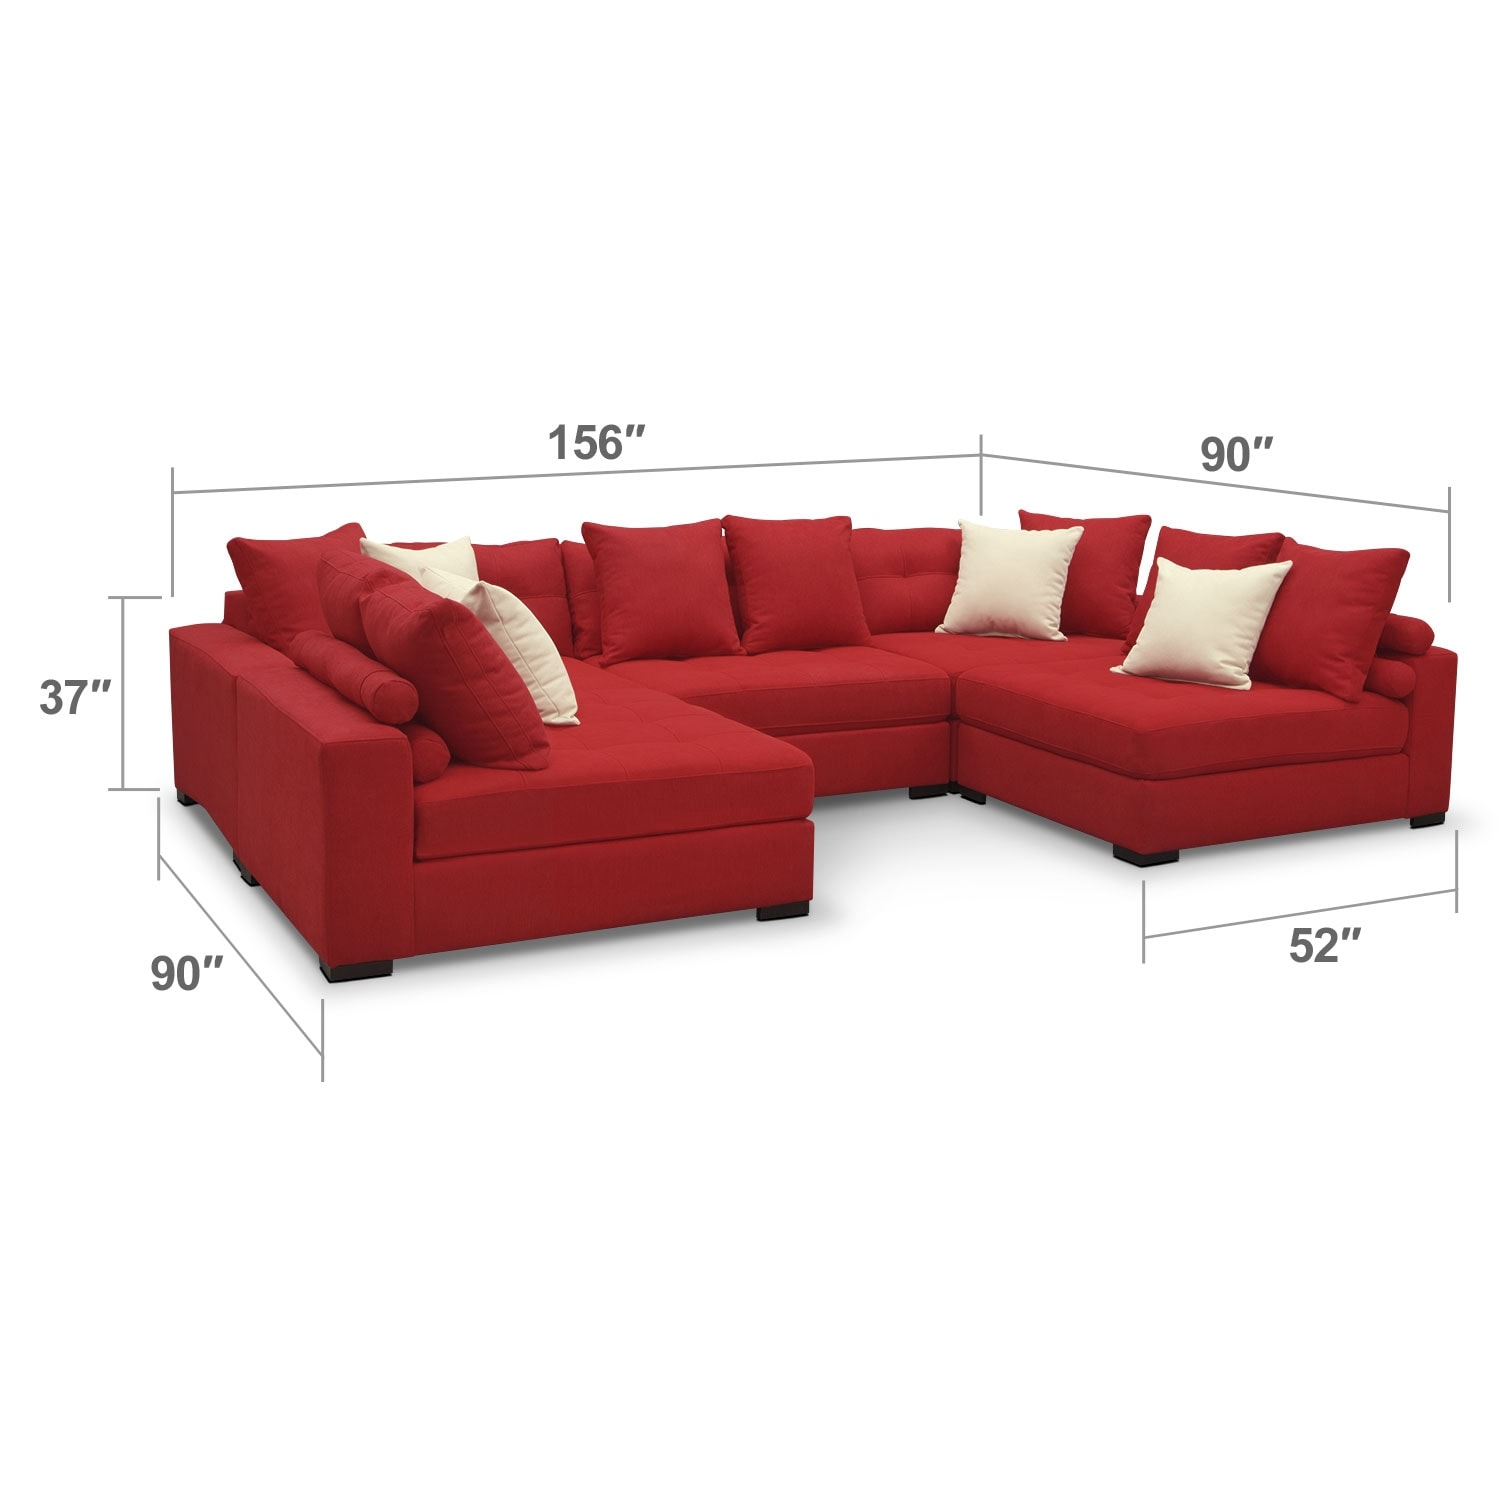 Living Room Furniture - Venti Red 5 Pc. Sectional